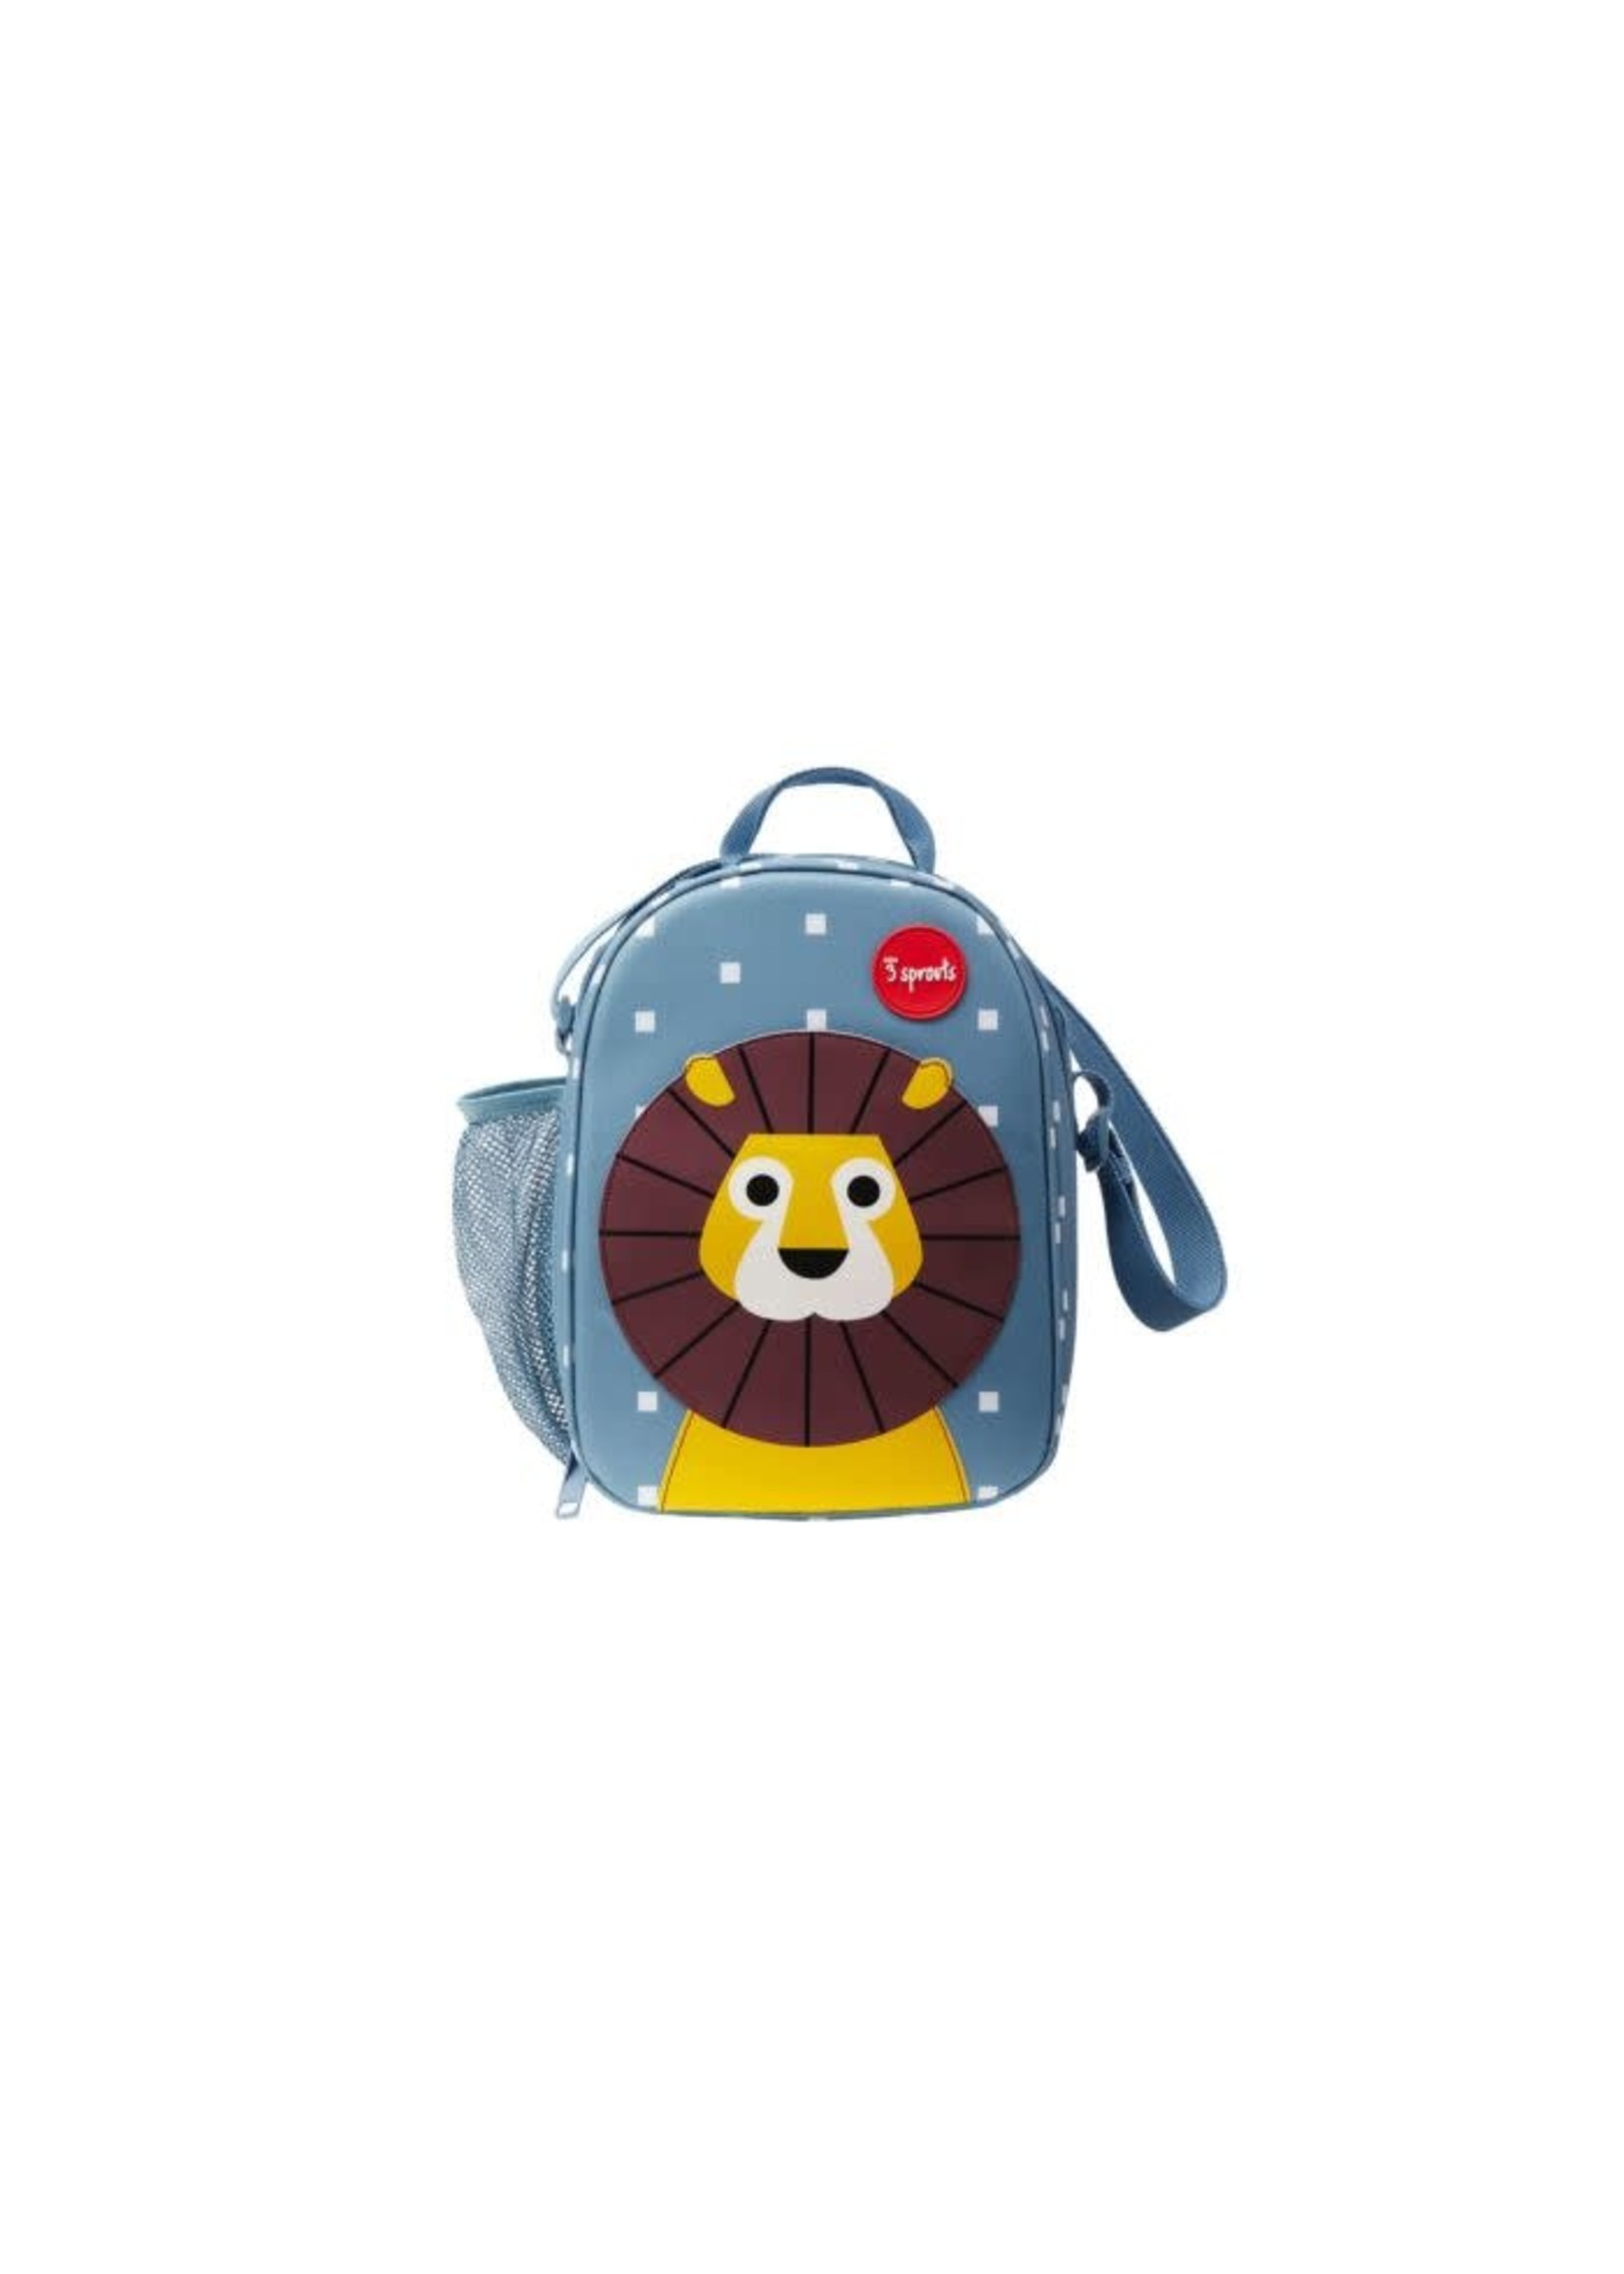 3 sprouts Insulated Lunchbag (Lion)